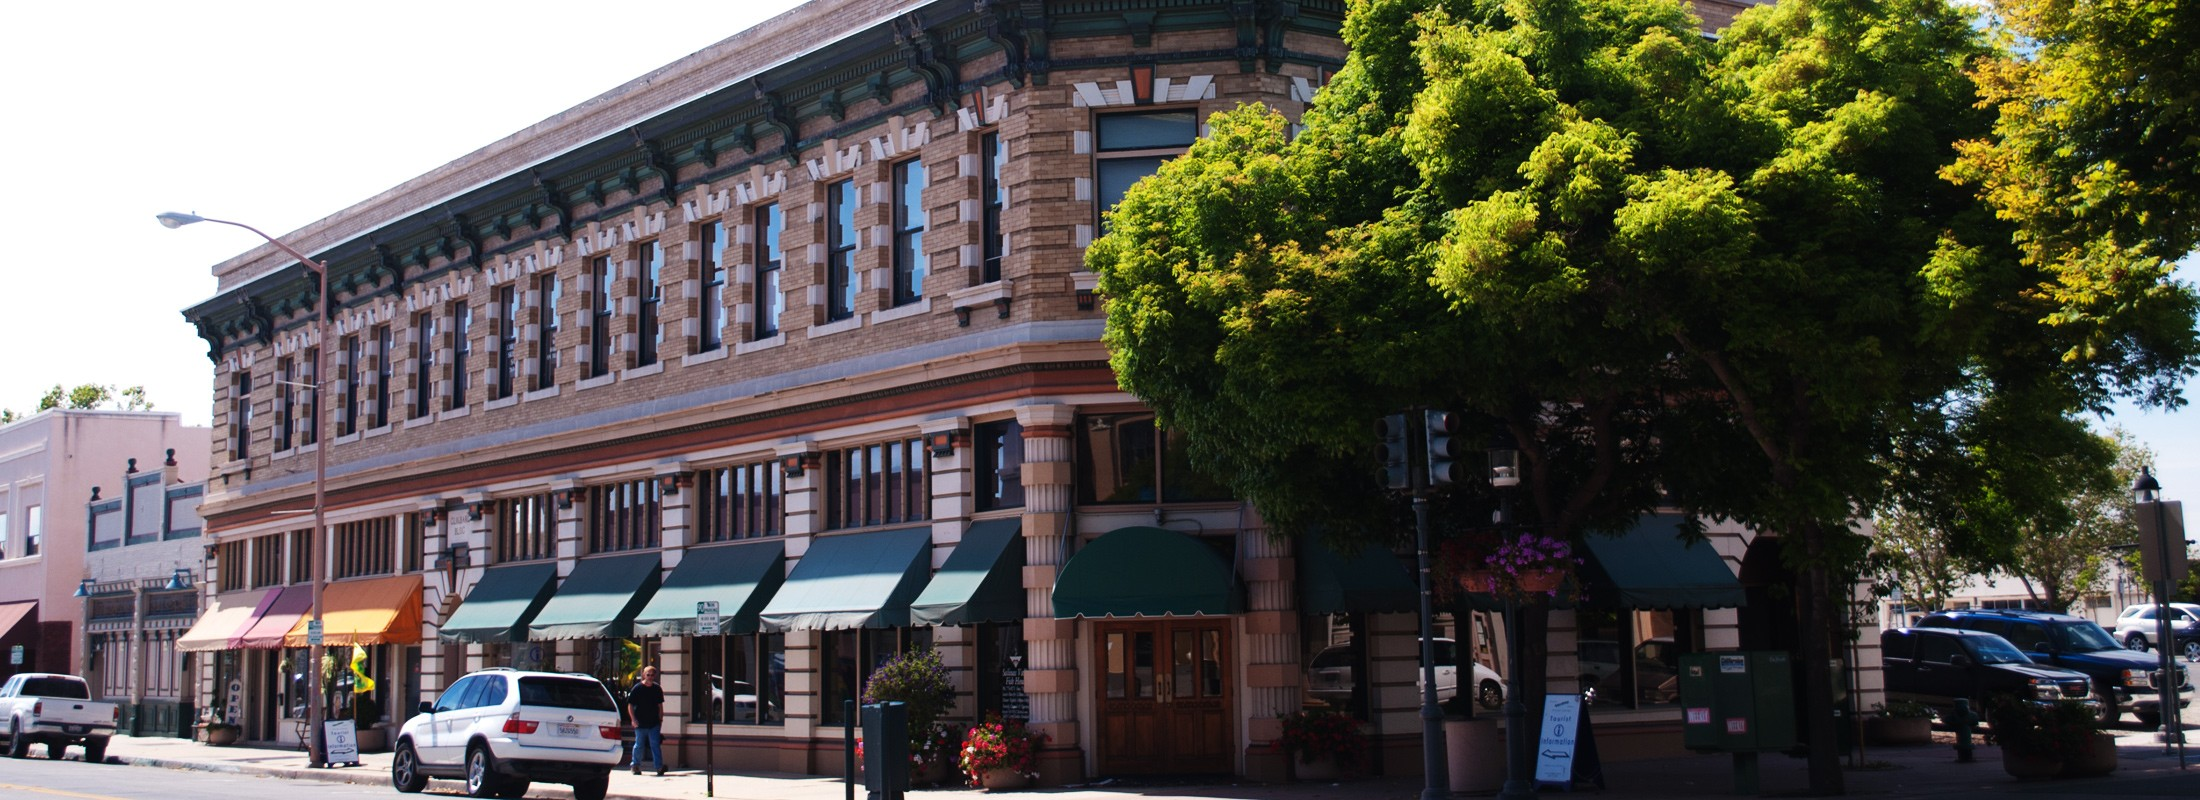 Salinas Old Town Main Street Red Brick Building and Tree